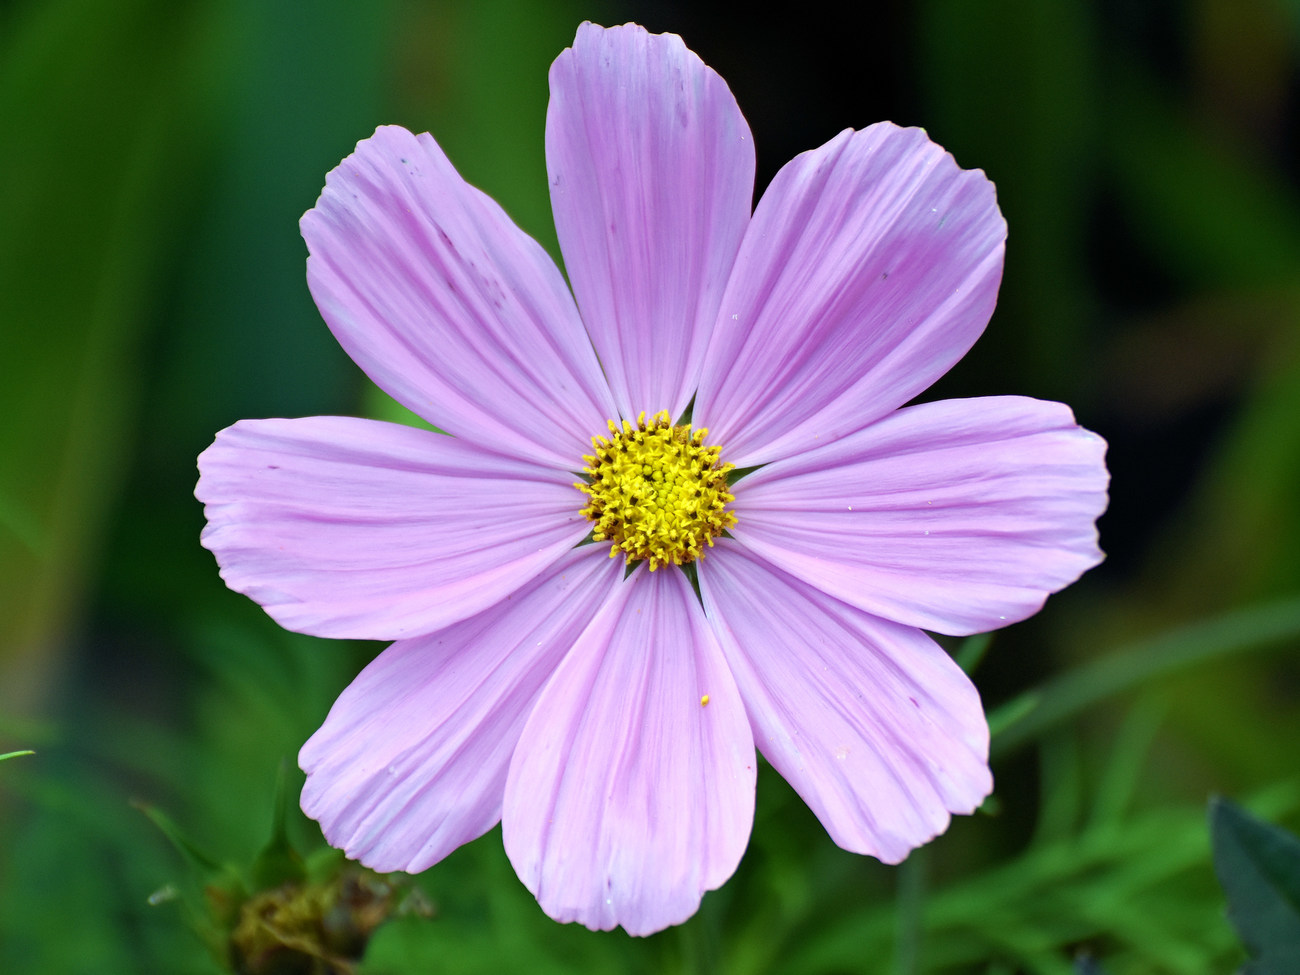 Cosmos flower by kordouane